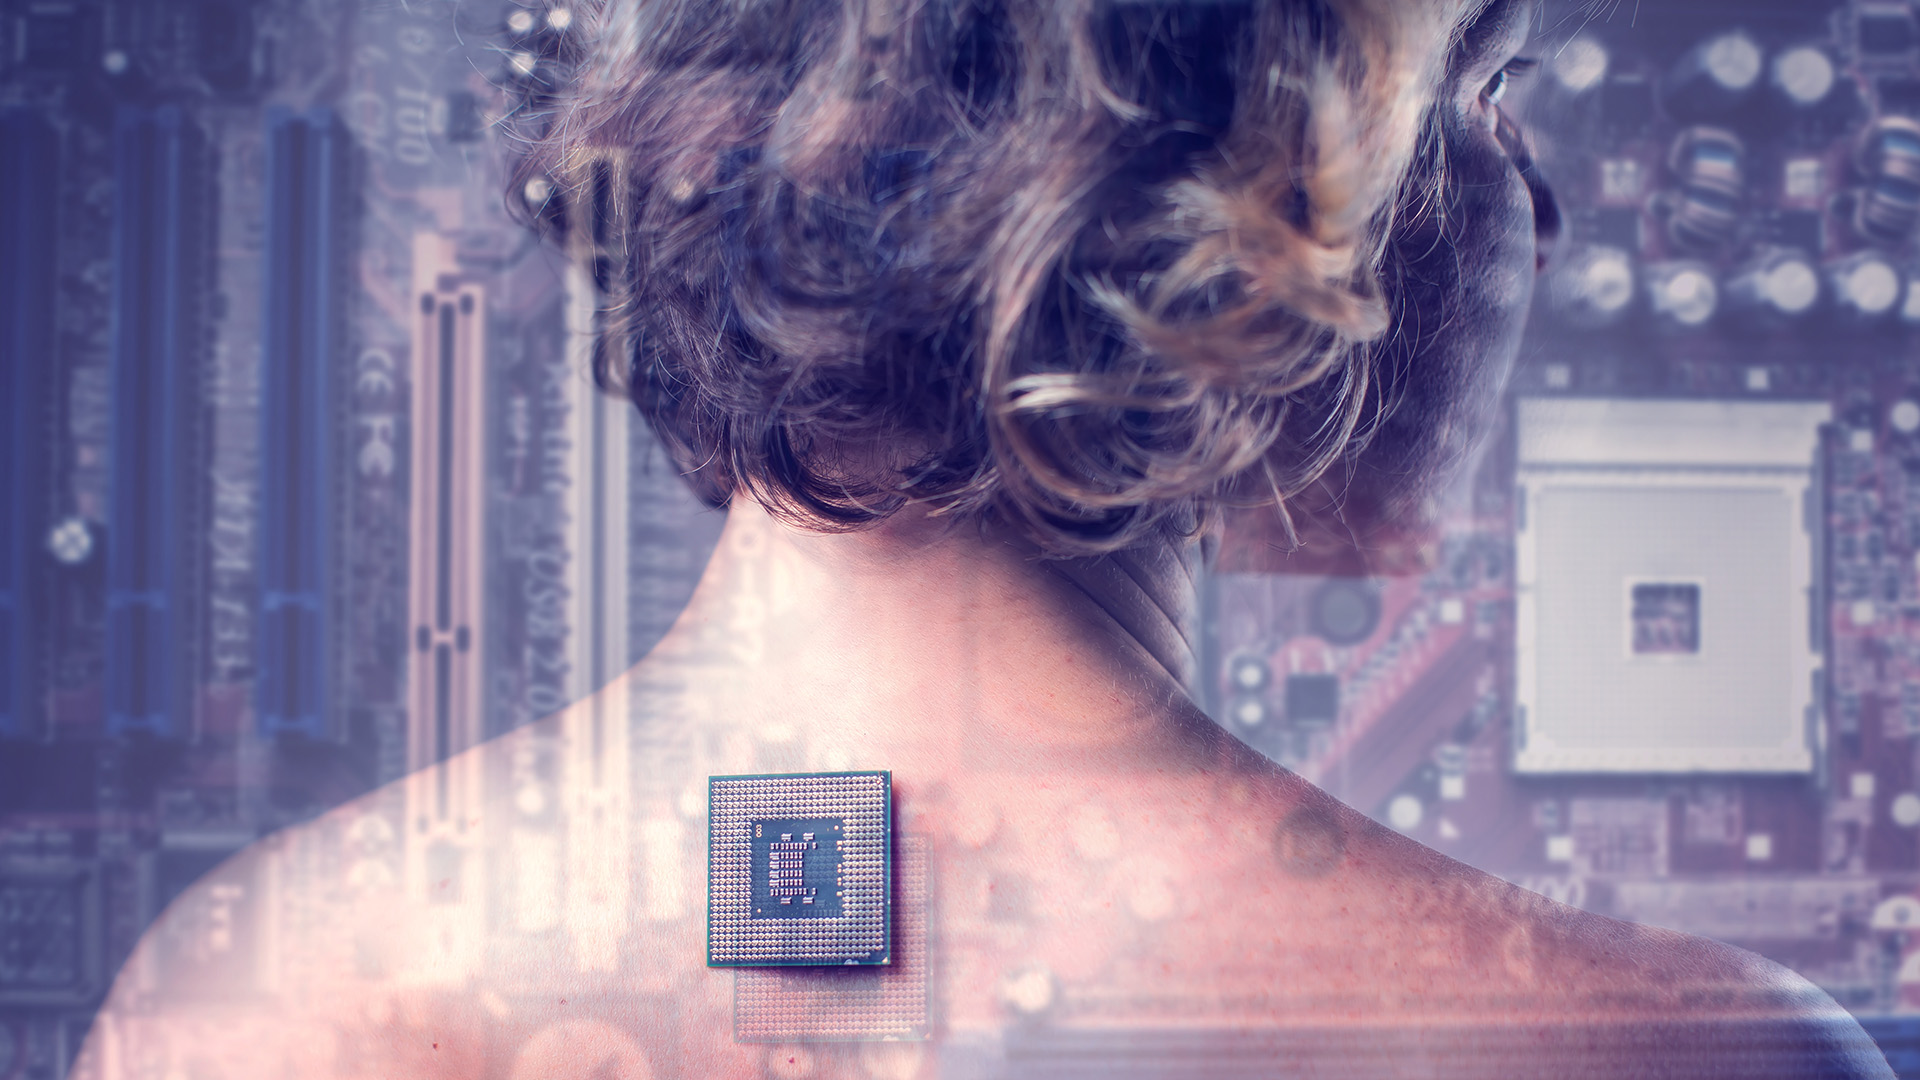 Bionic chip implant in female human body provides augmentation